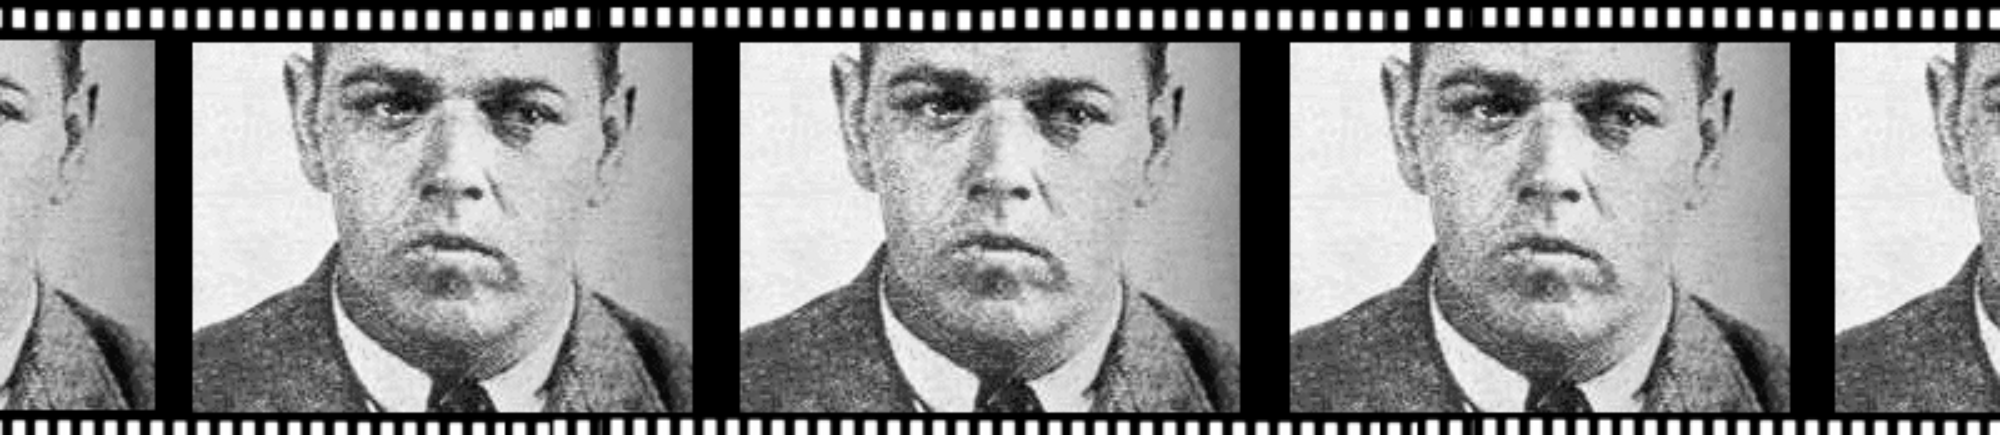 Whittaker Chambers Movie| Whittaker Chambers Film